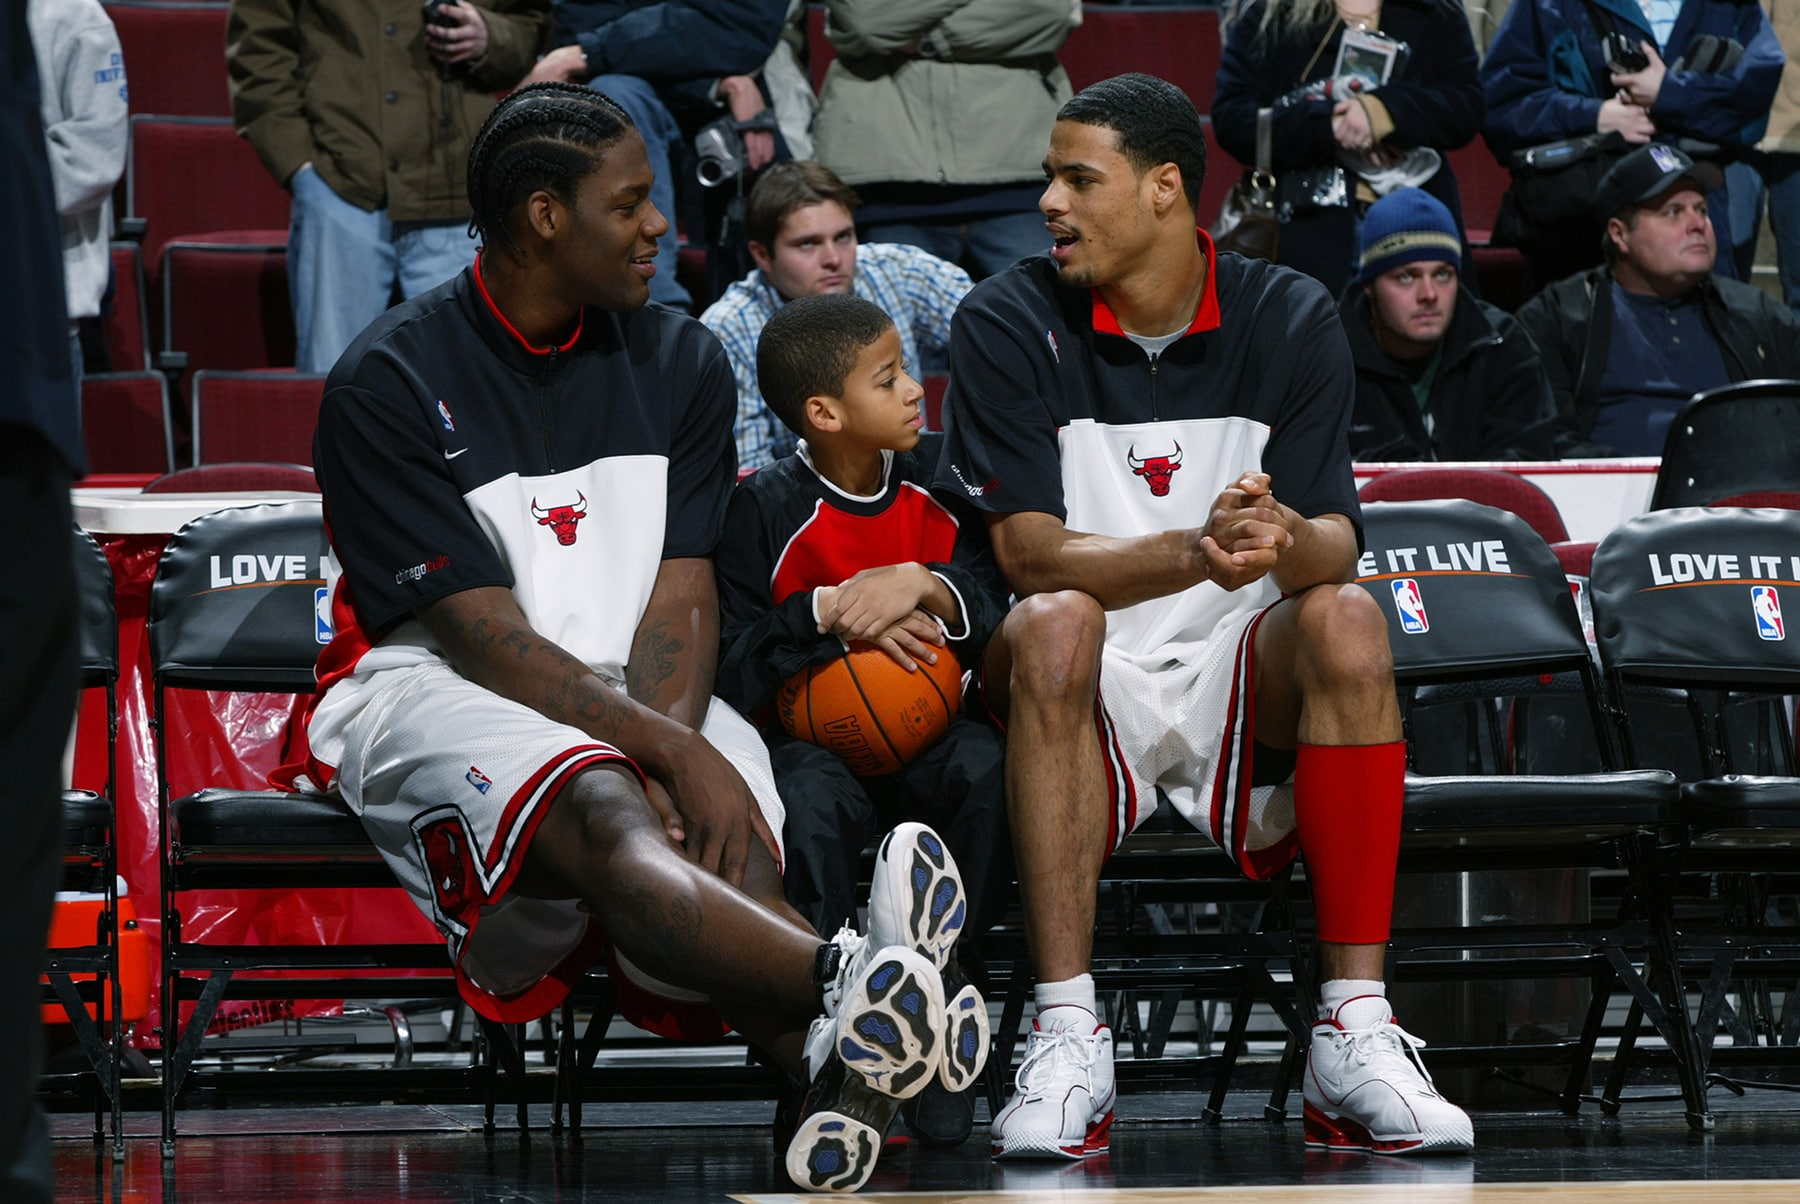 Tyson Chandler & Eddy Curry talk ot a young fan before a Bulls game